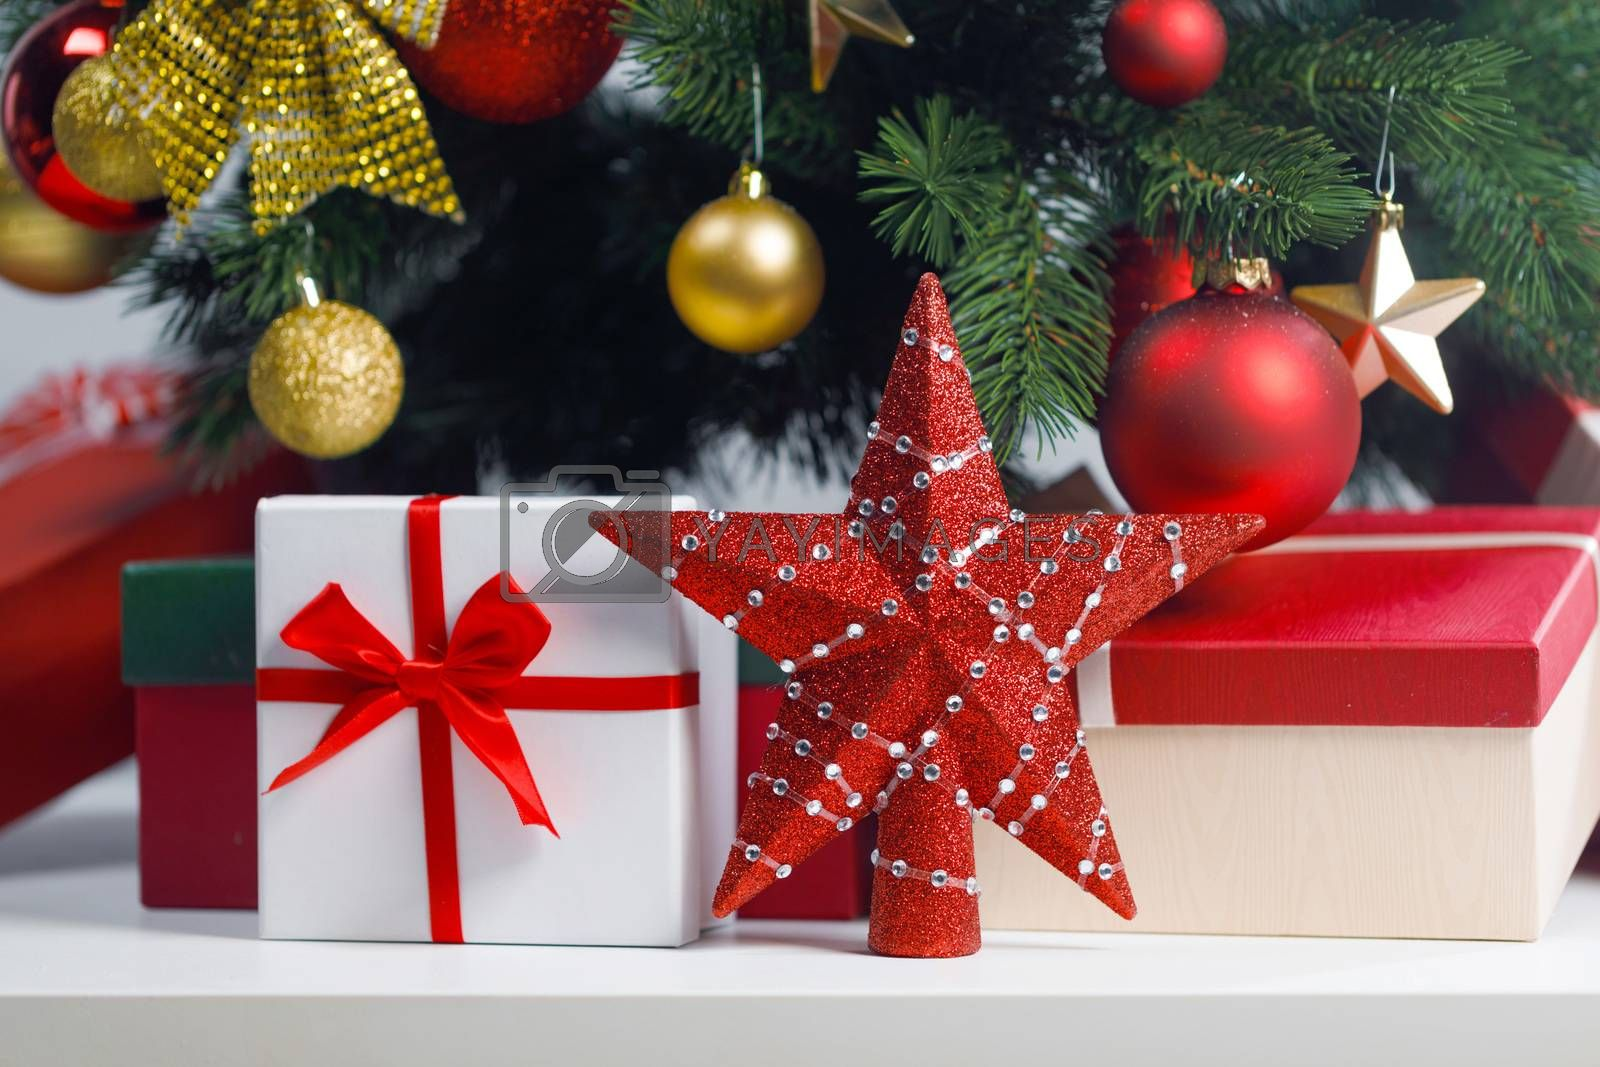 Christmas gifts and red decorative star on white background